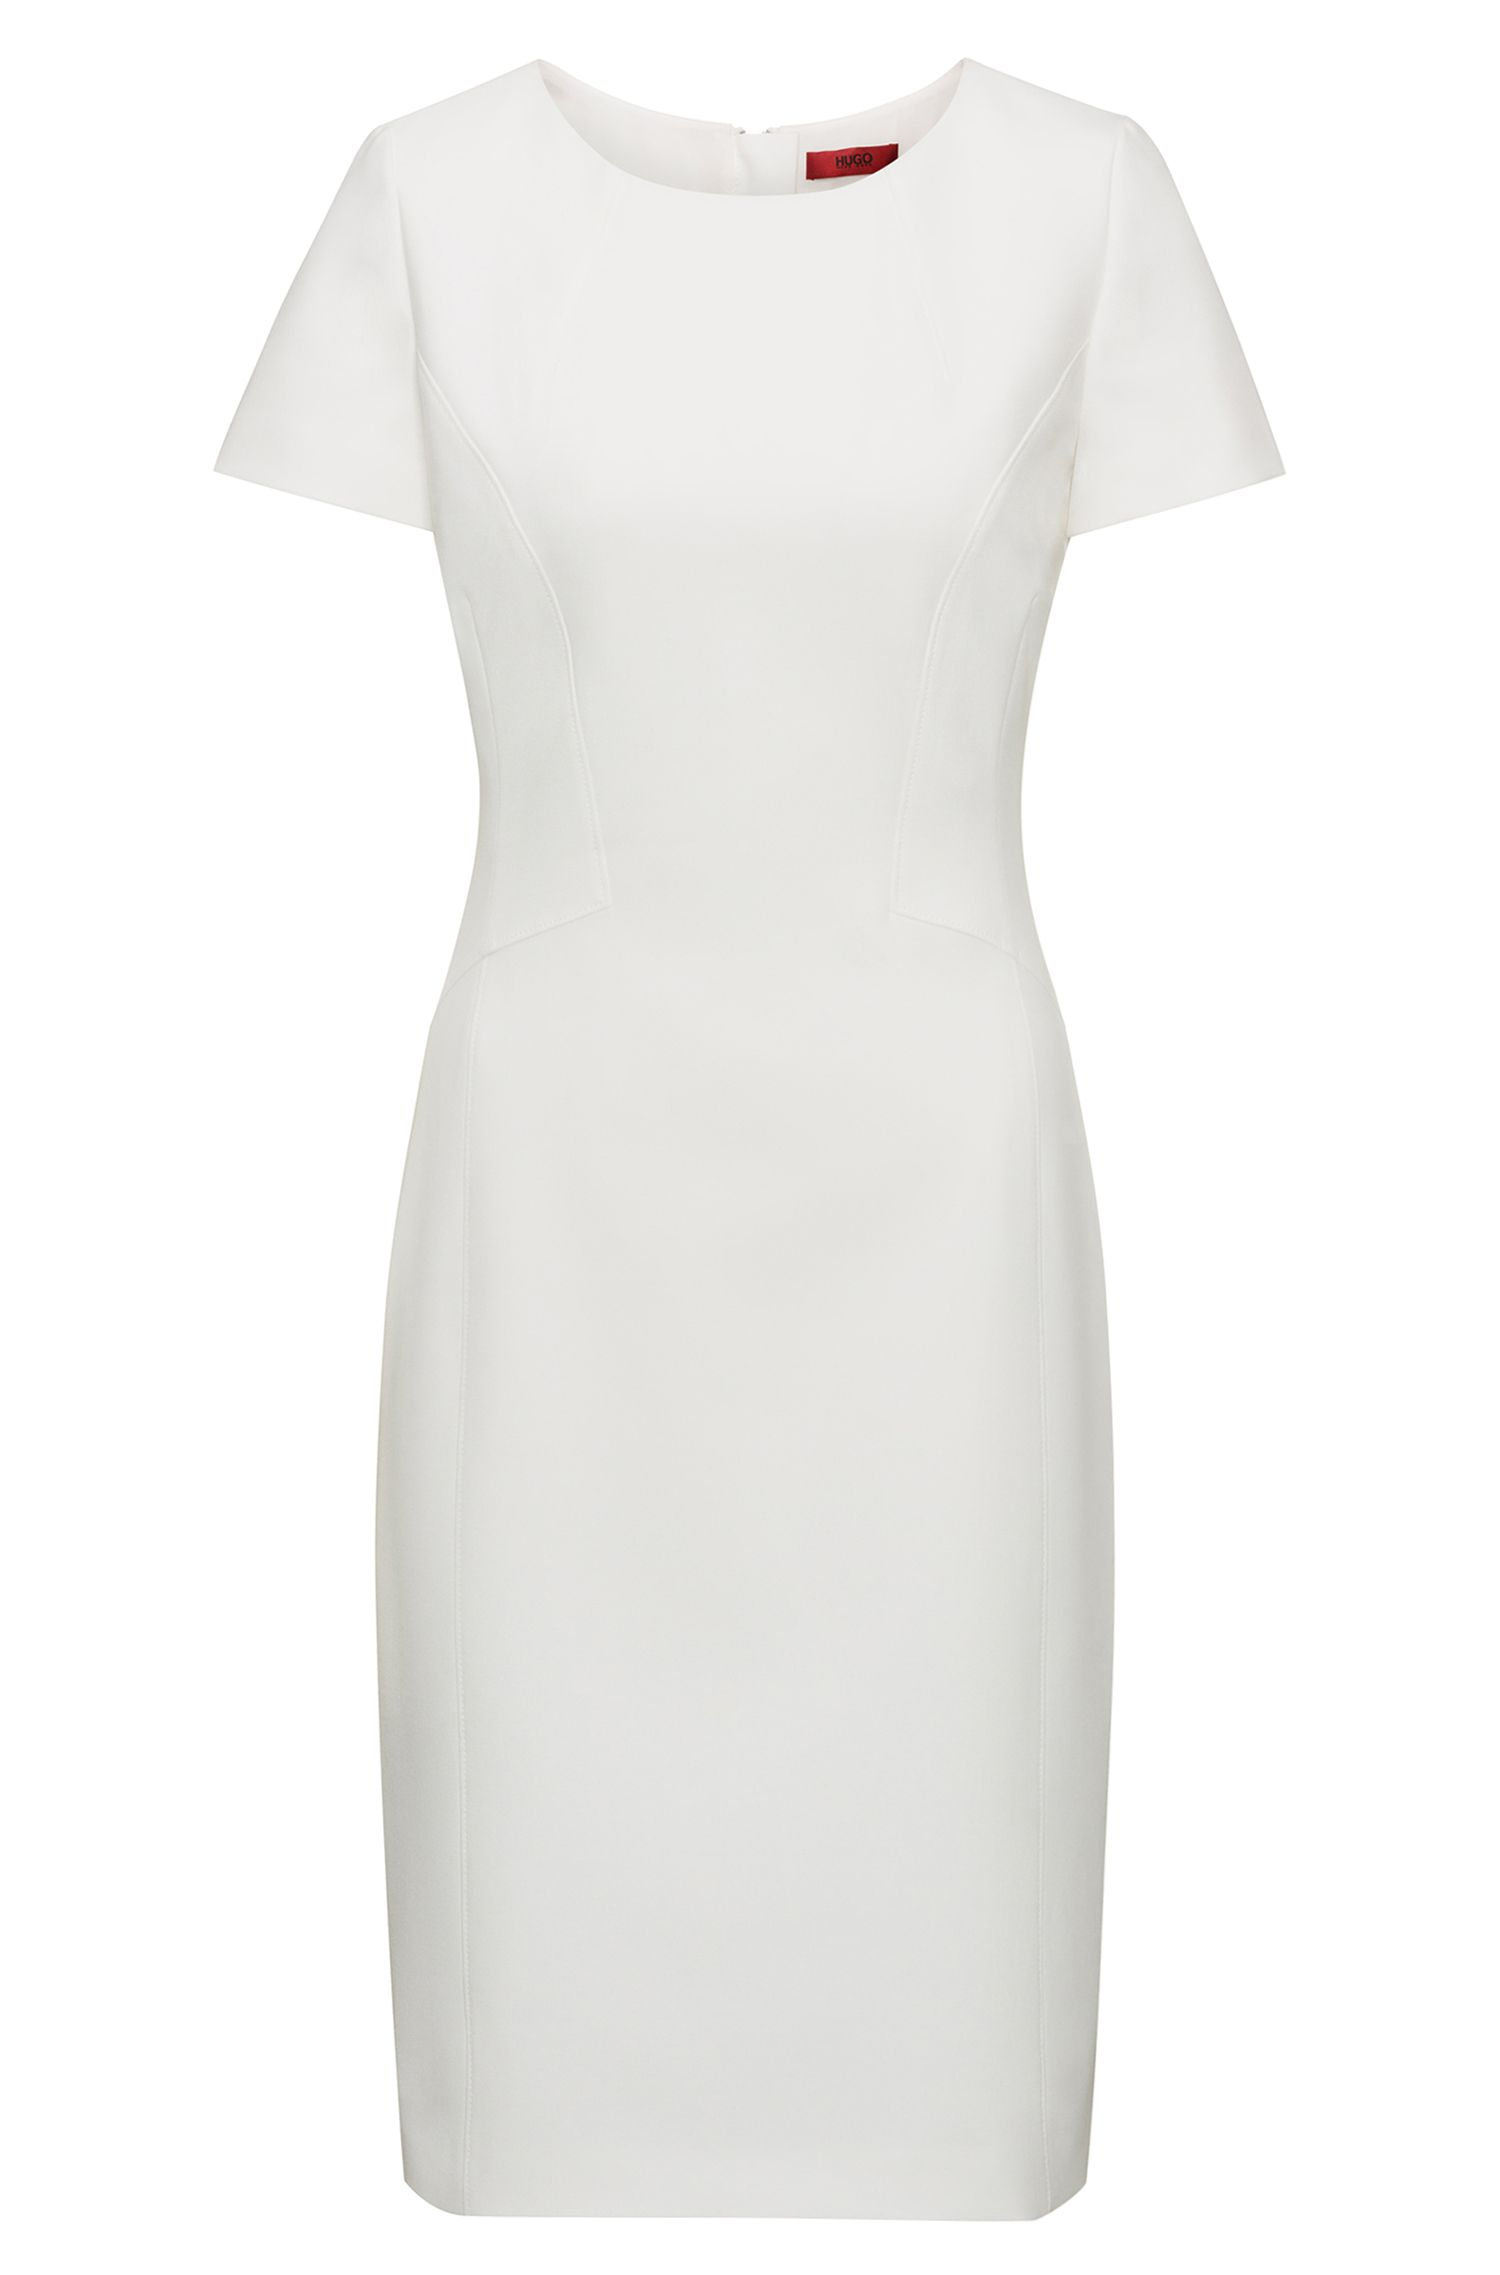 Fitted dress with feminine seaming